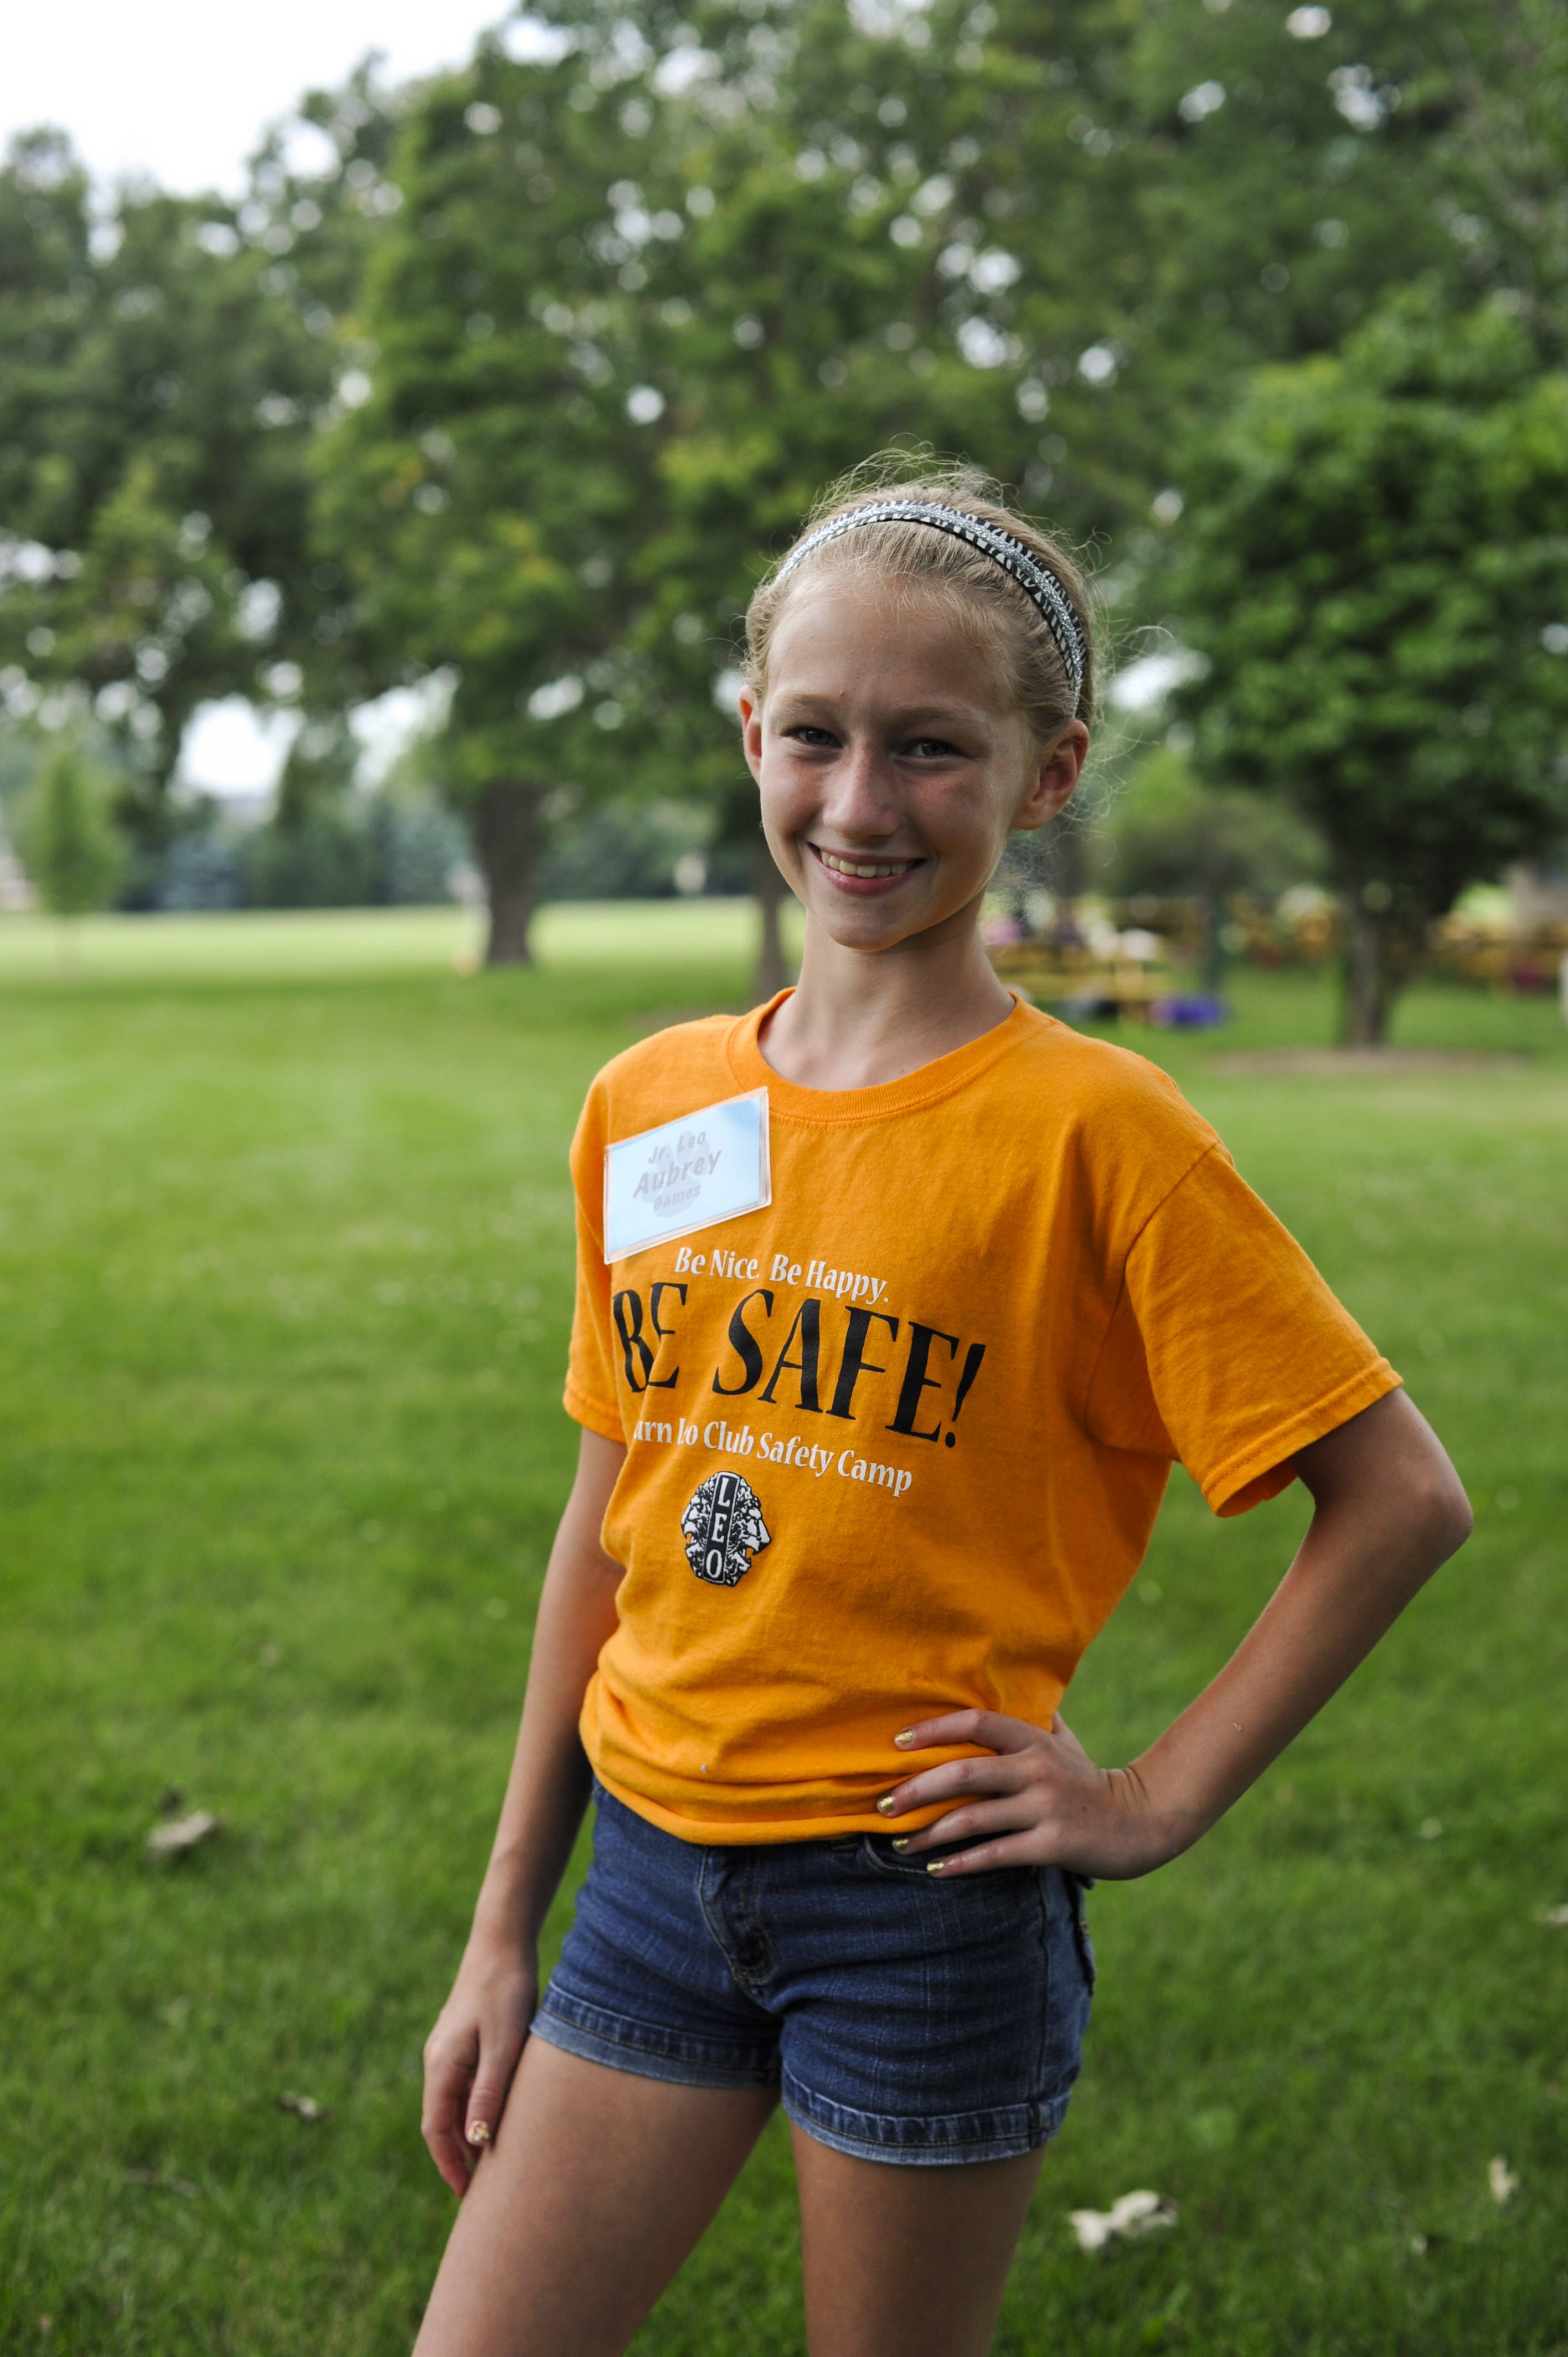 Aubrey Broz, 11, of Elburn, poses for a portrait at the Elburn Lions Club on Tuesday. Broz started the camp after hearing about the death of 13-year-old Caity Phillips last year. The two-day camp was free for kids ages 7-10 and taught them about how to stay safe in a variety of situations.